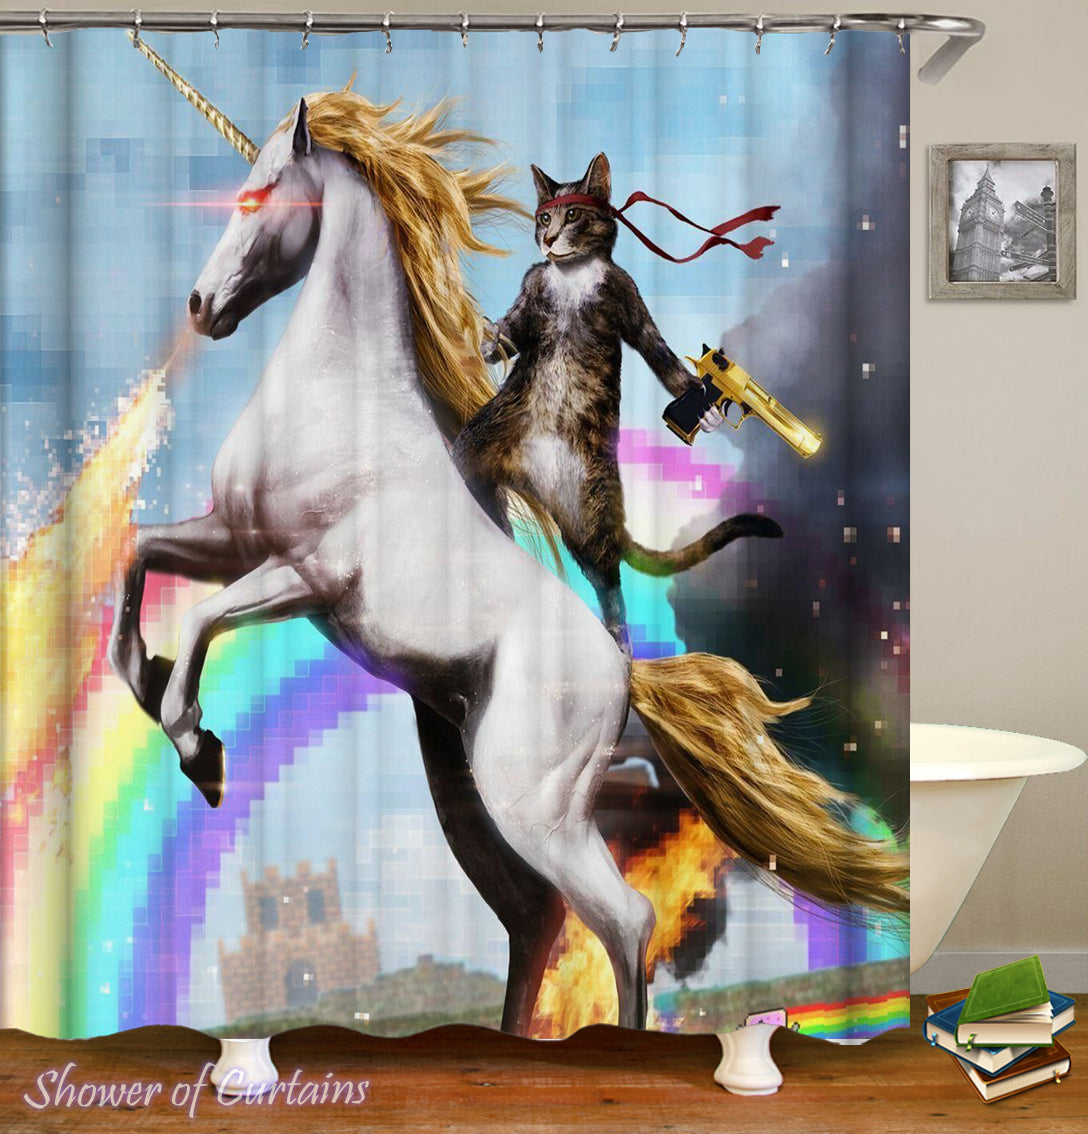 Shower Curtains Cat Riding A Unicorn Shower Of Curtains